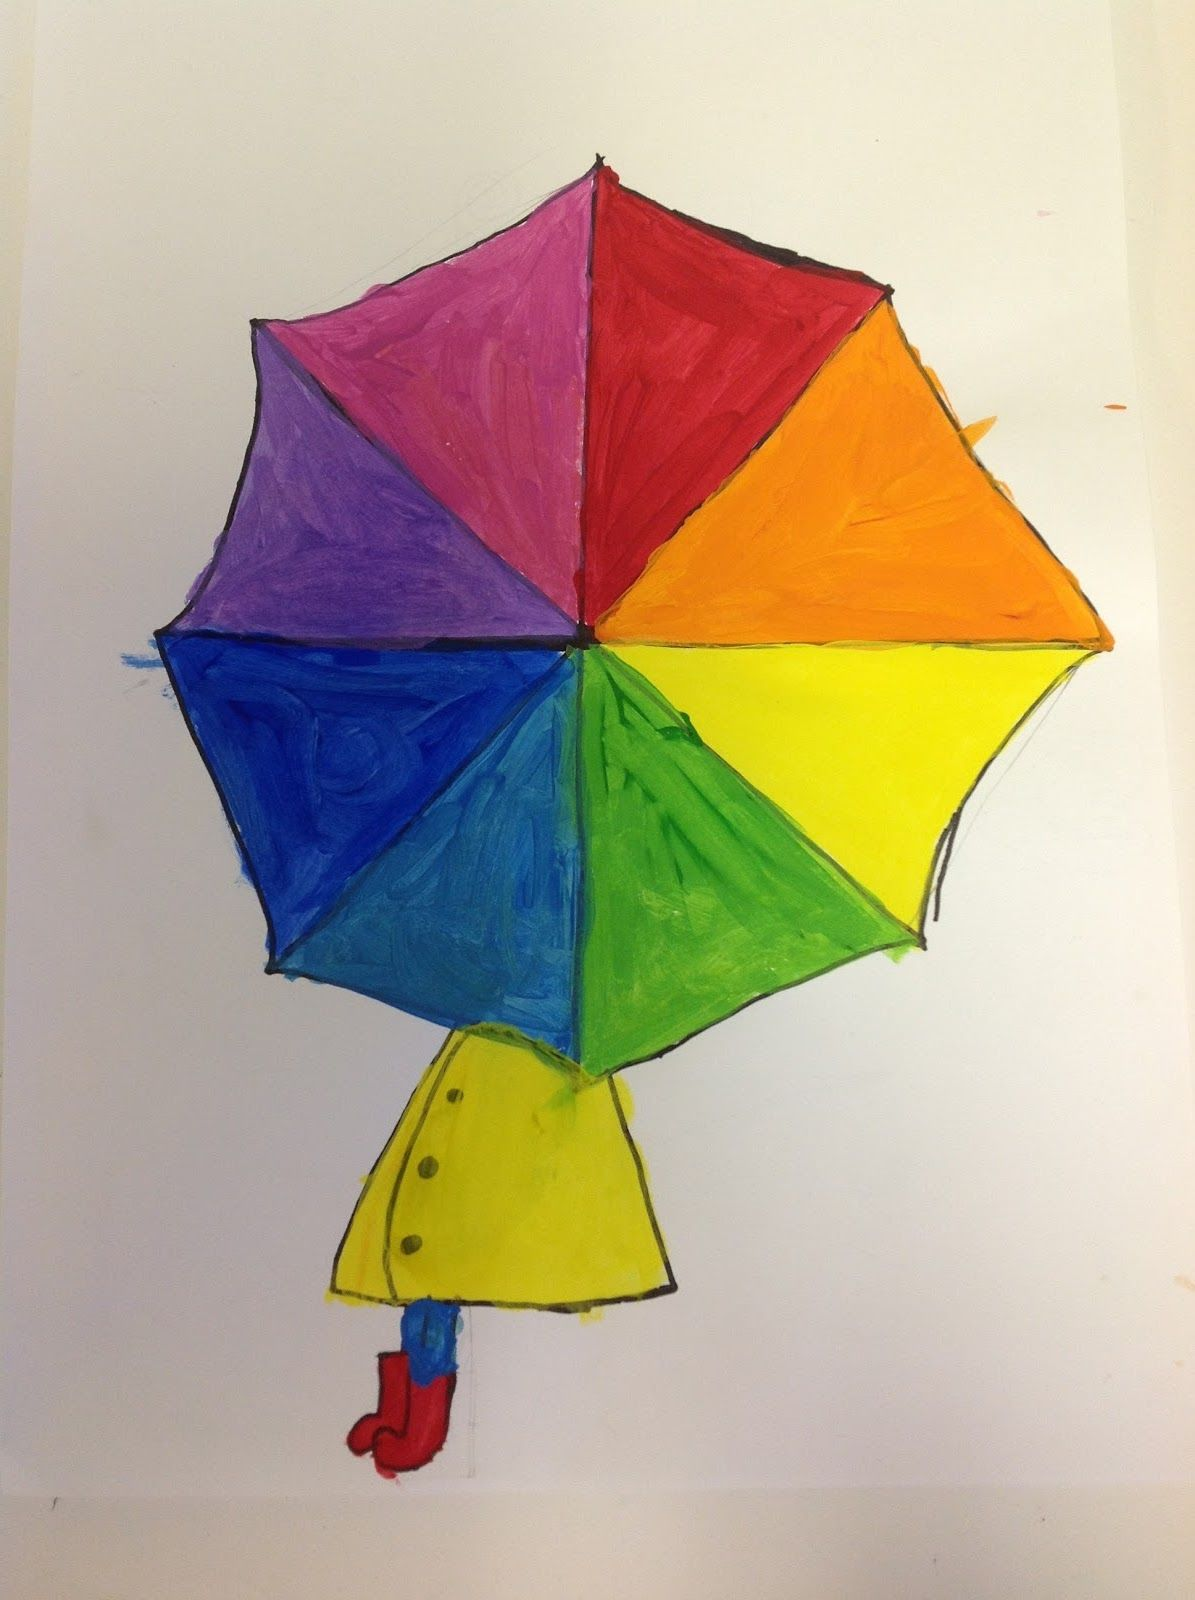 Color wheel art lesson for second grade - Color Wheel Umbrellas Grade For Kindergarten Could Just Draw The Umbrella Handle Instead Of The Person